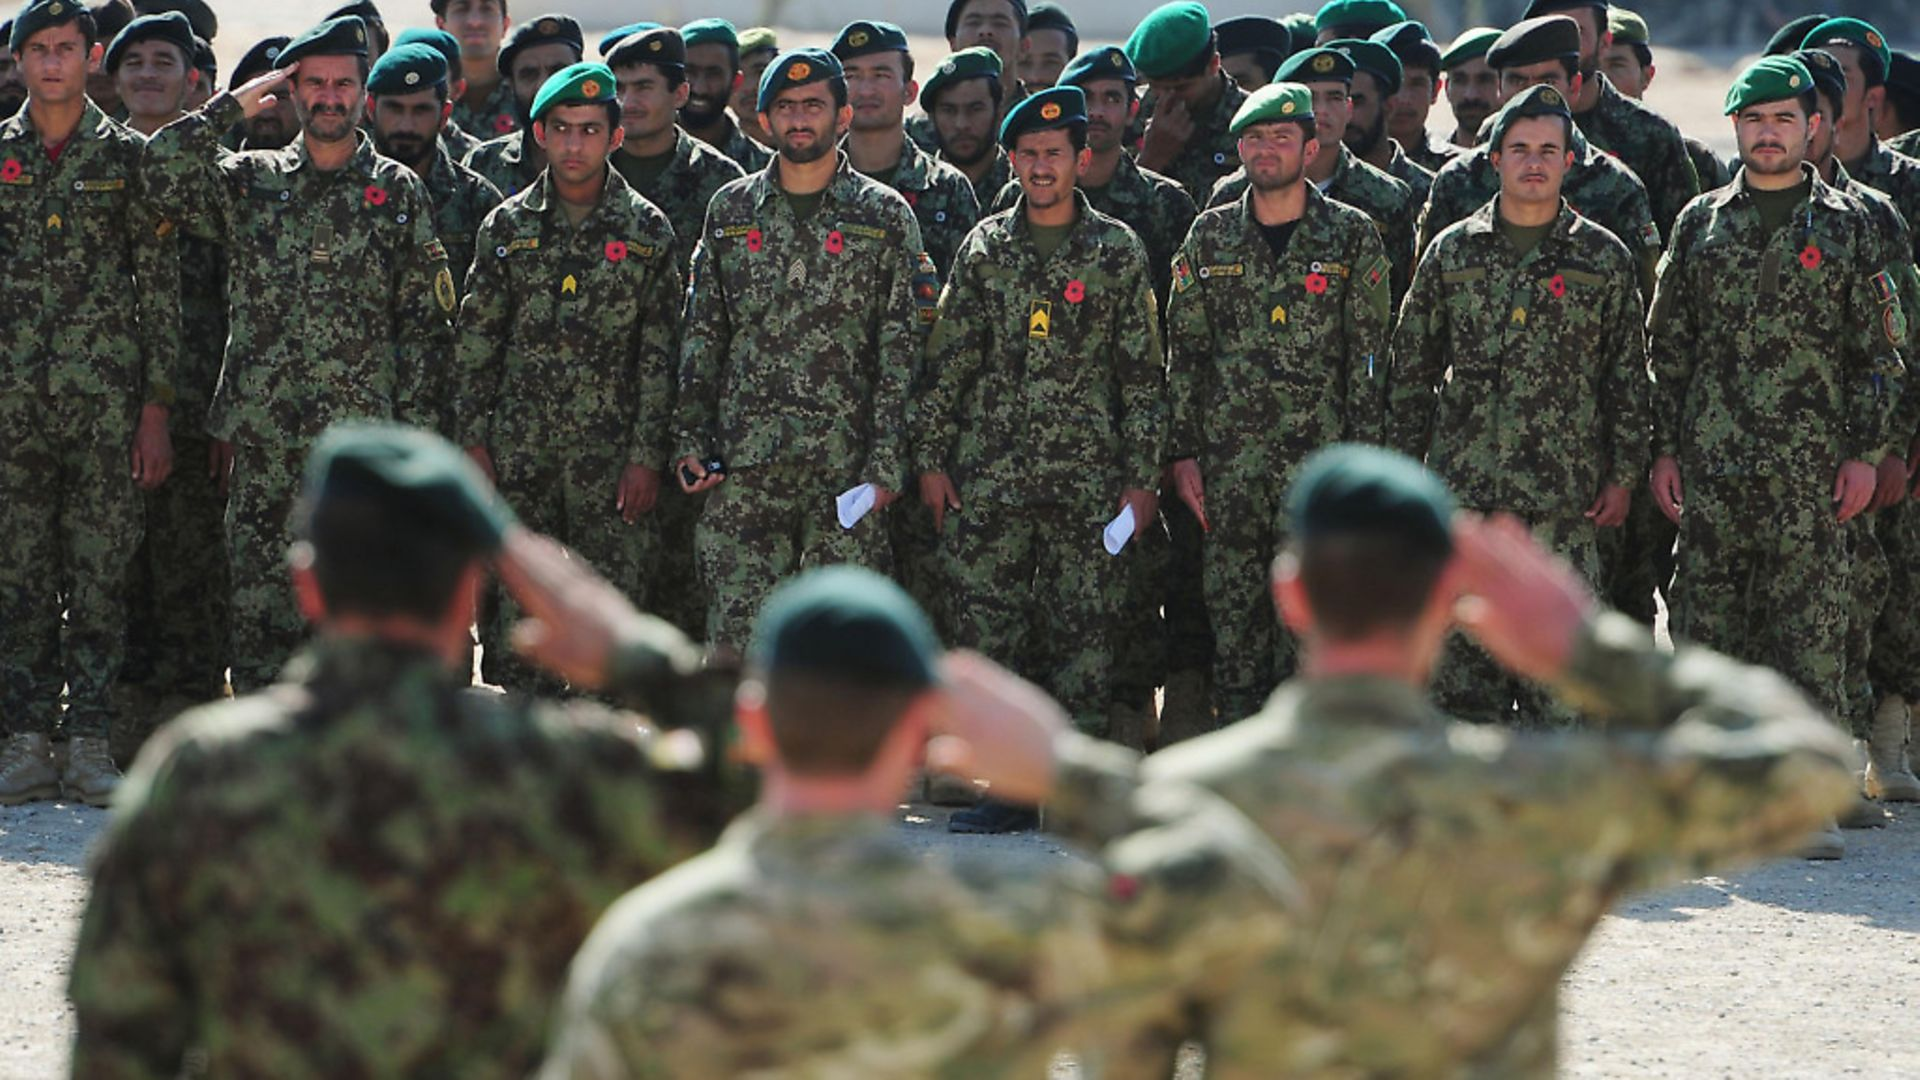 British and Afghan troops standing side by side at Camp Shorabak, Helmand Province in Afghanistan to mark Remembrance together for the first time during a special parade. - Credit: PA Archive/PA Images